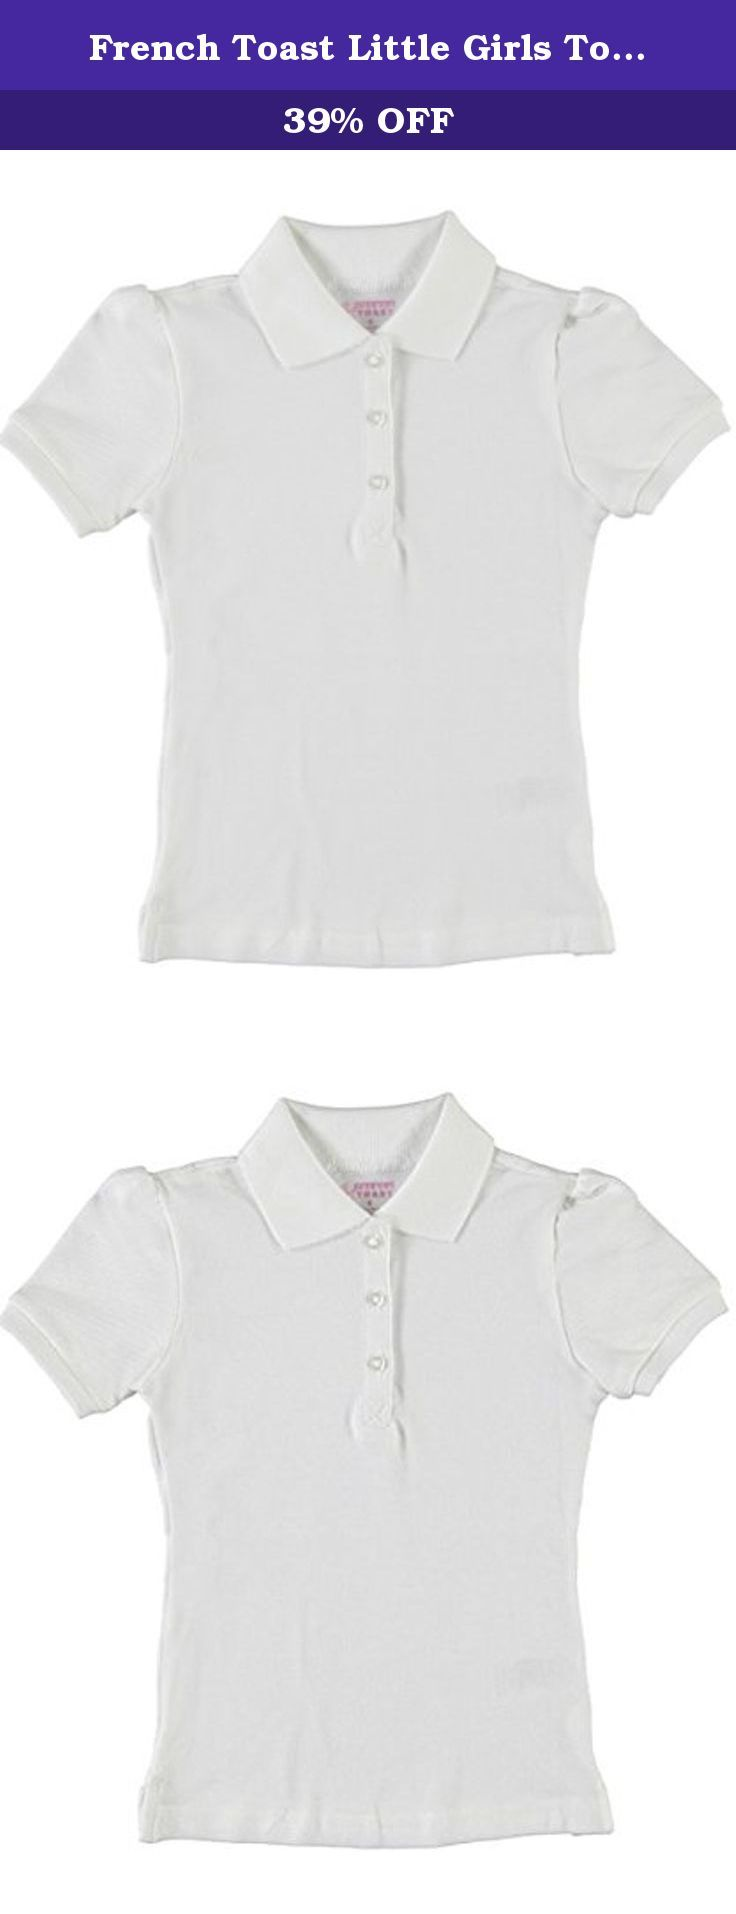 French Toast Little Girls Top Marks S/S Pique Polo - white, 4. 97% Cotton / 3% Spandex. French Toast Girls' Short Sleeve Pique Stretch Polo shirt has a knit collar and three button front.